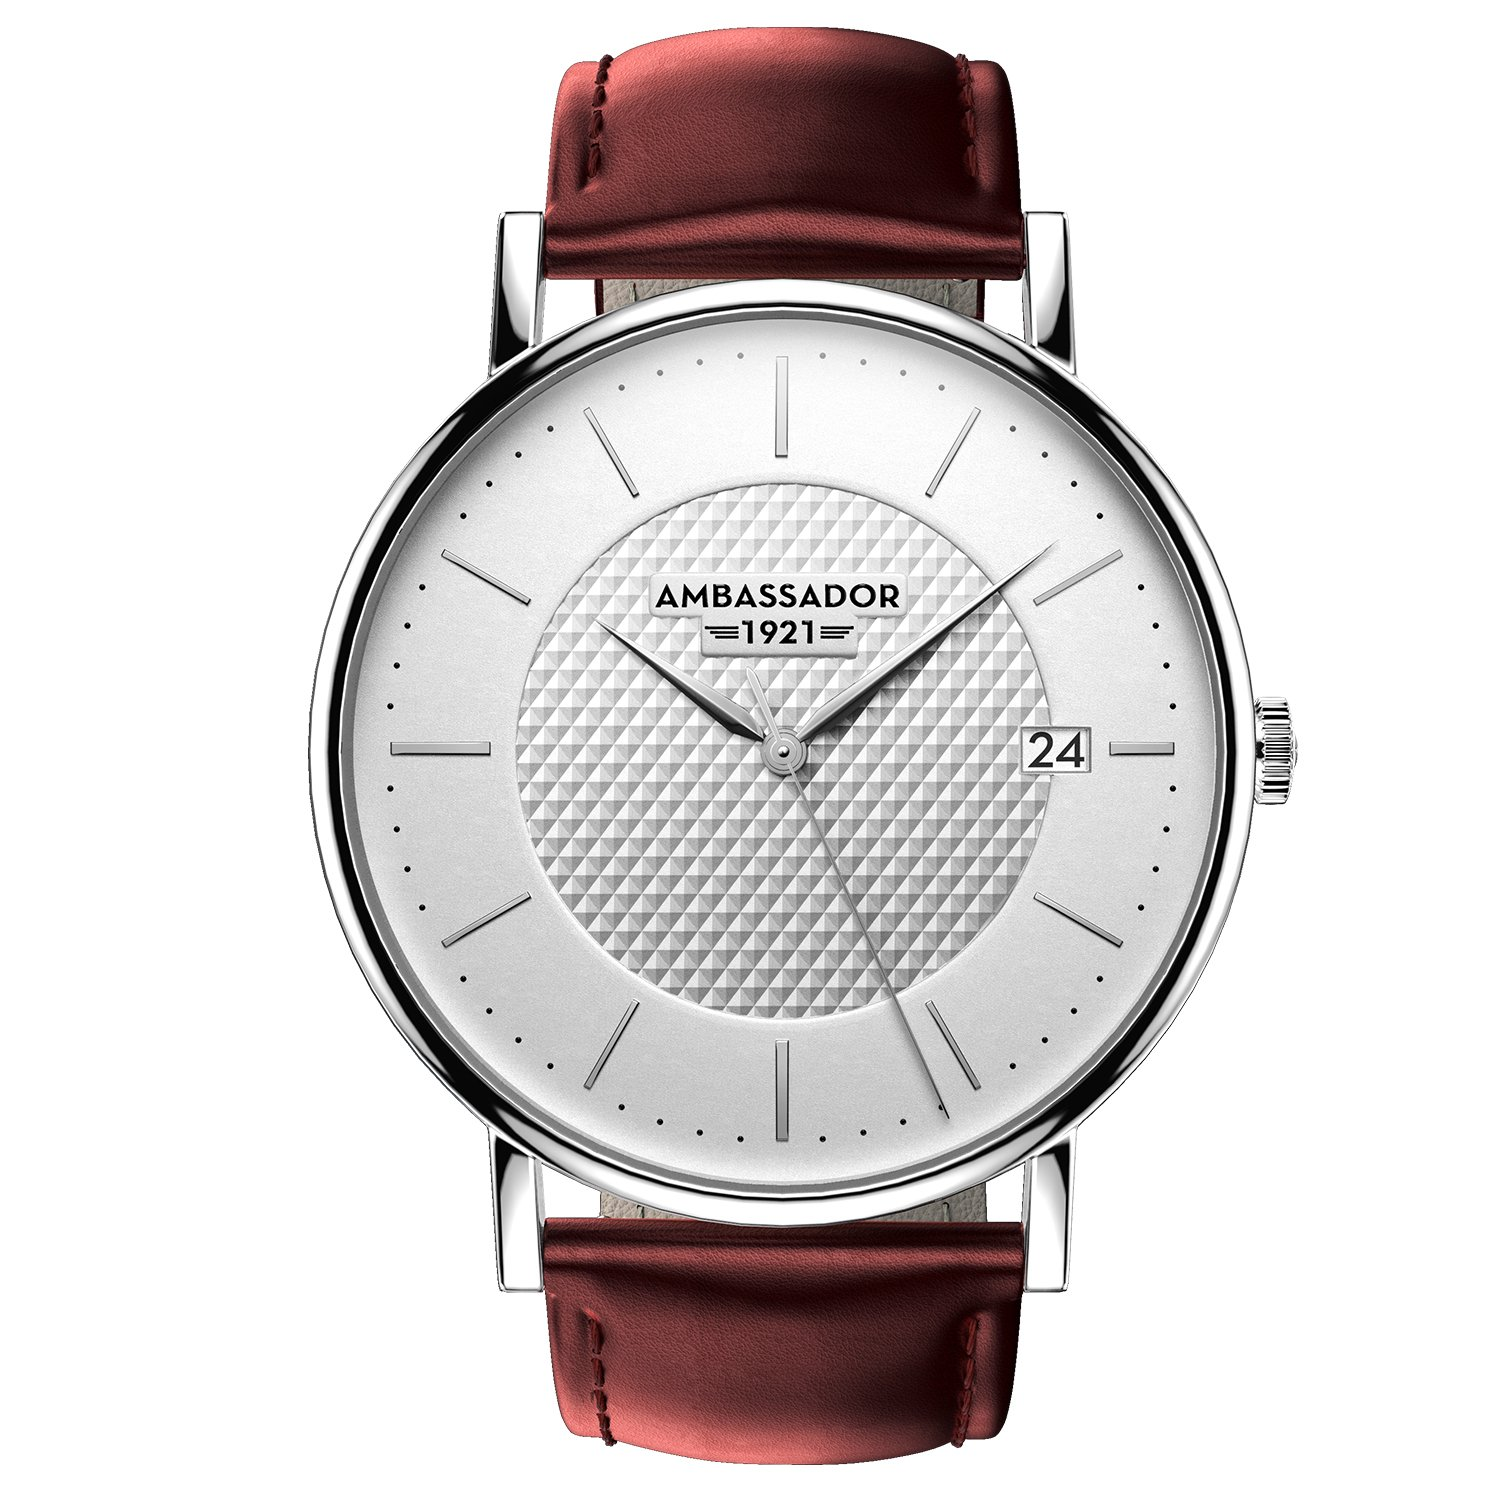 Ambassador Luxury Watch for Men - Heritage 1921 Silver Case with Burgundy Leather Strap with Swiss Quality